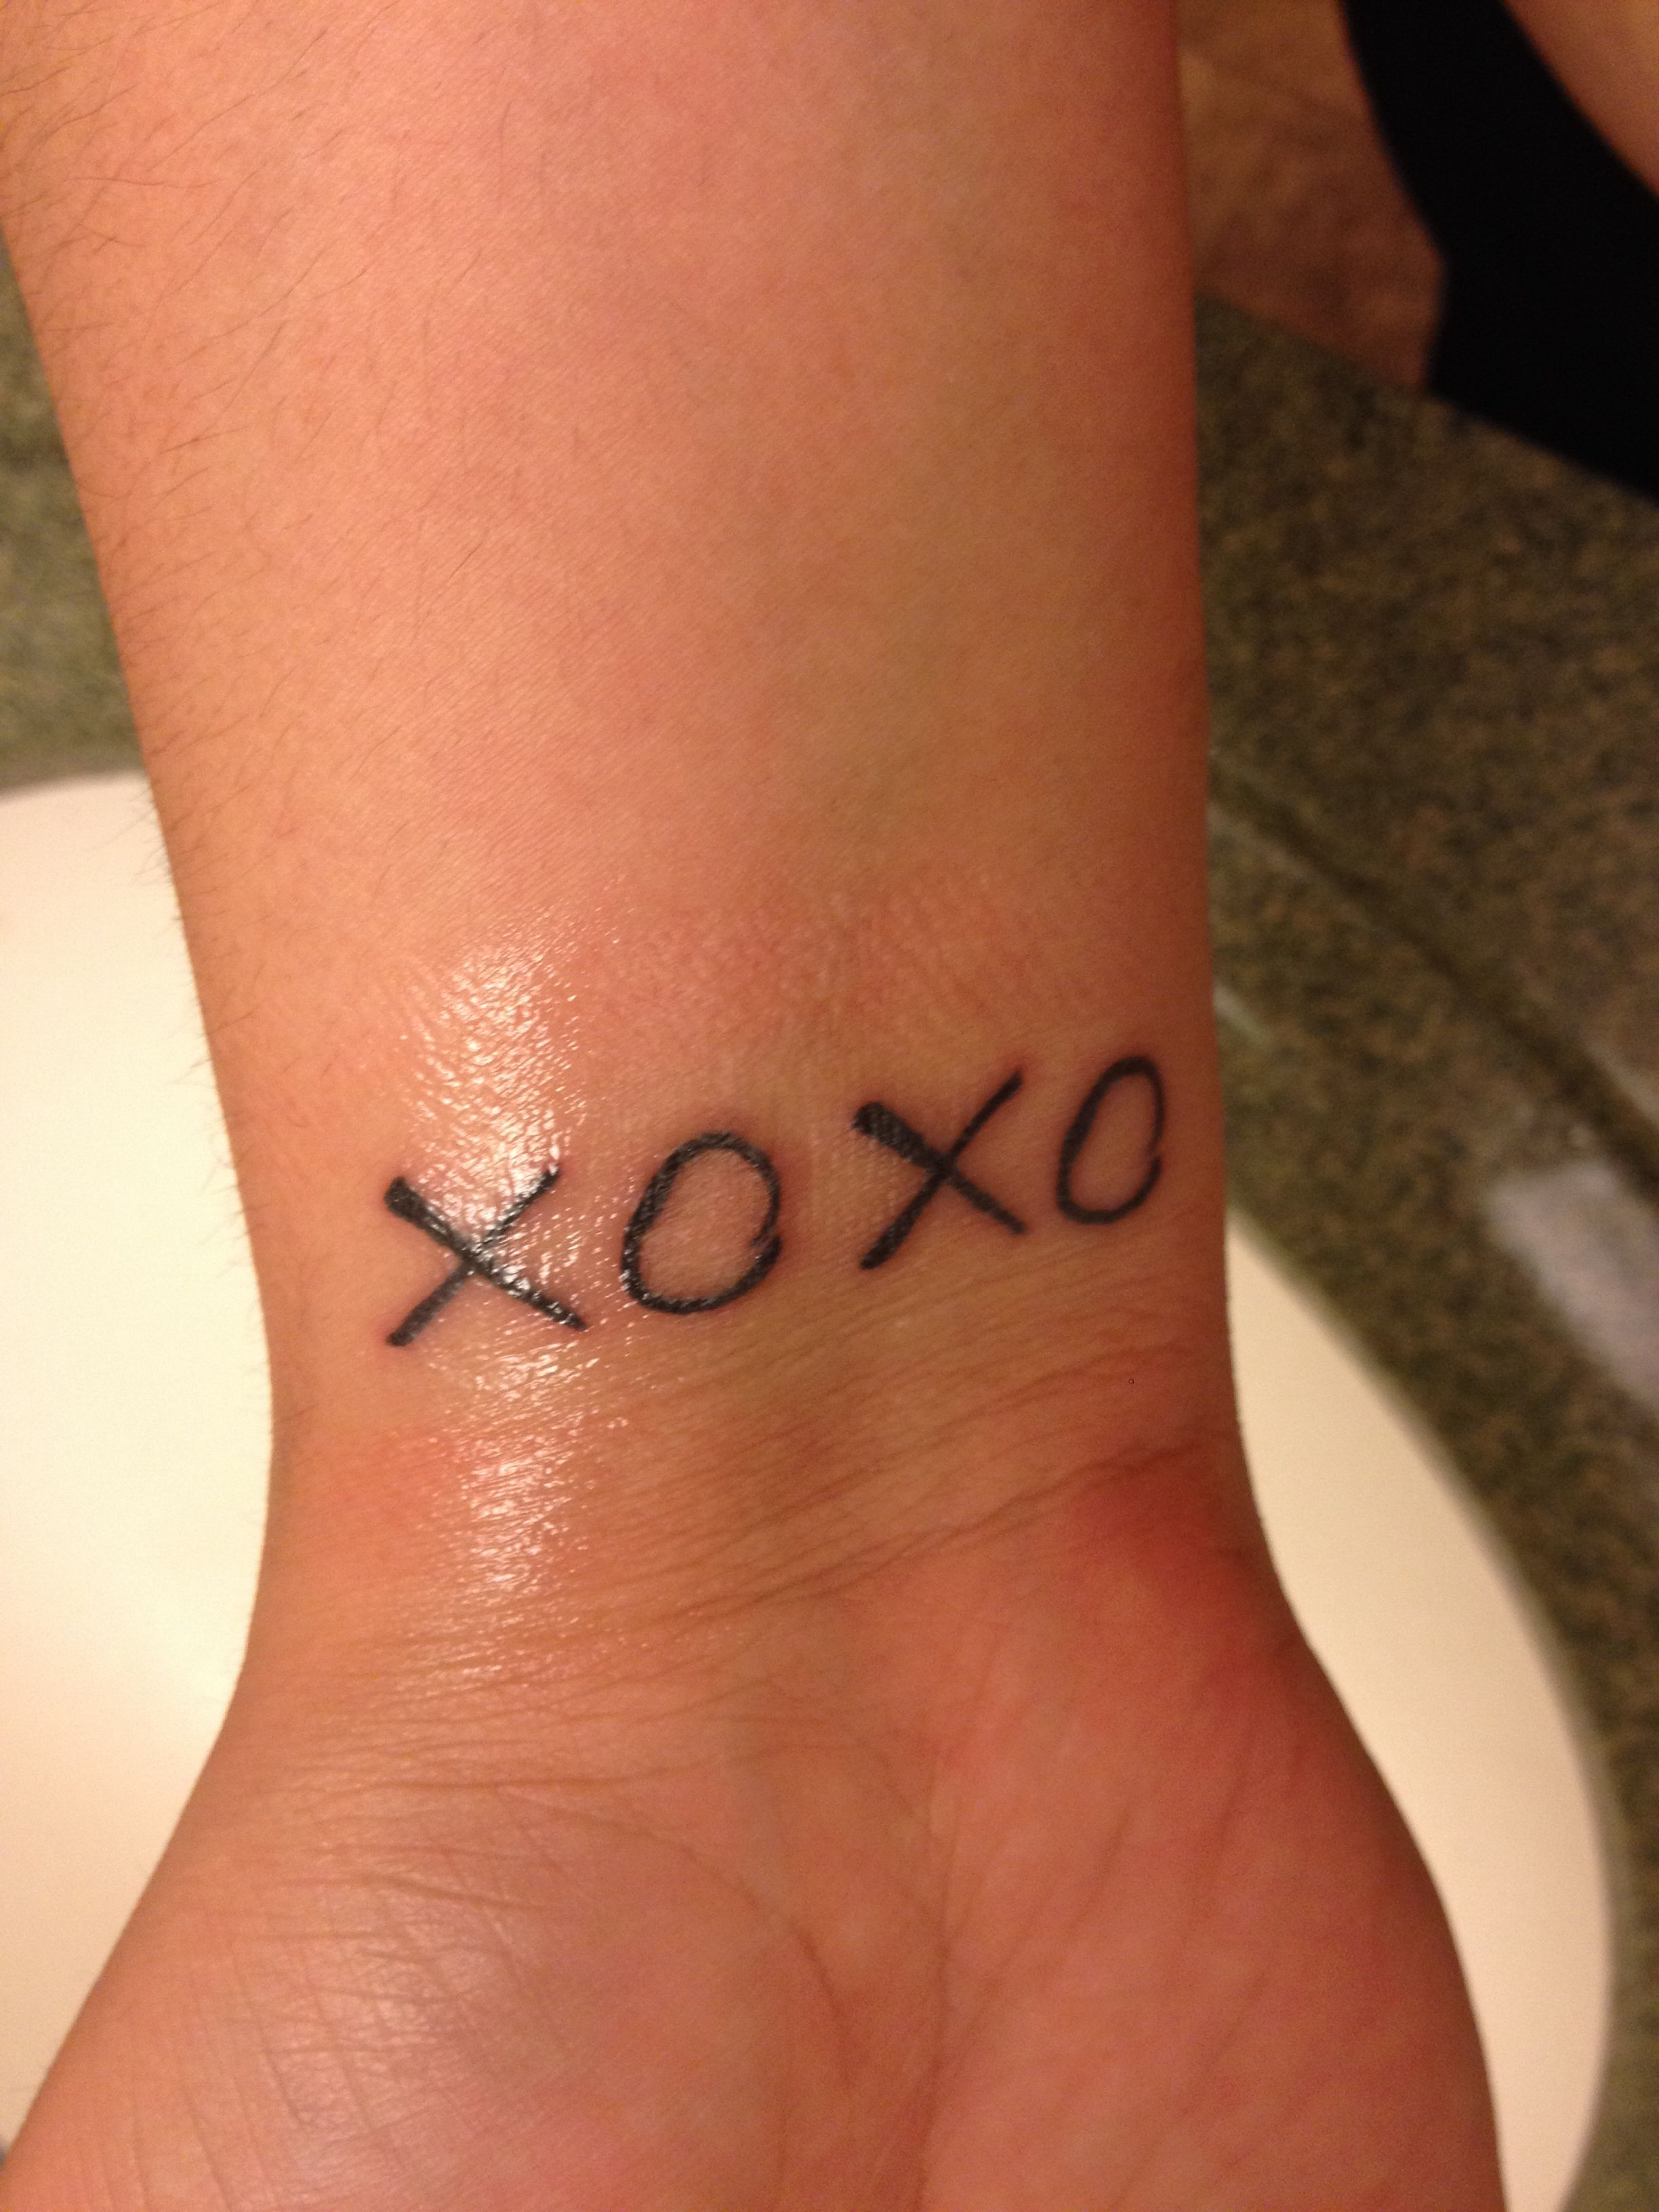 Xoxo Tattoo Tattoos Wrist Tattoos Tattoos And Piercings